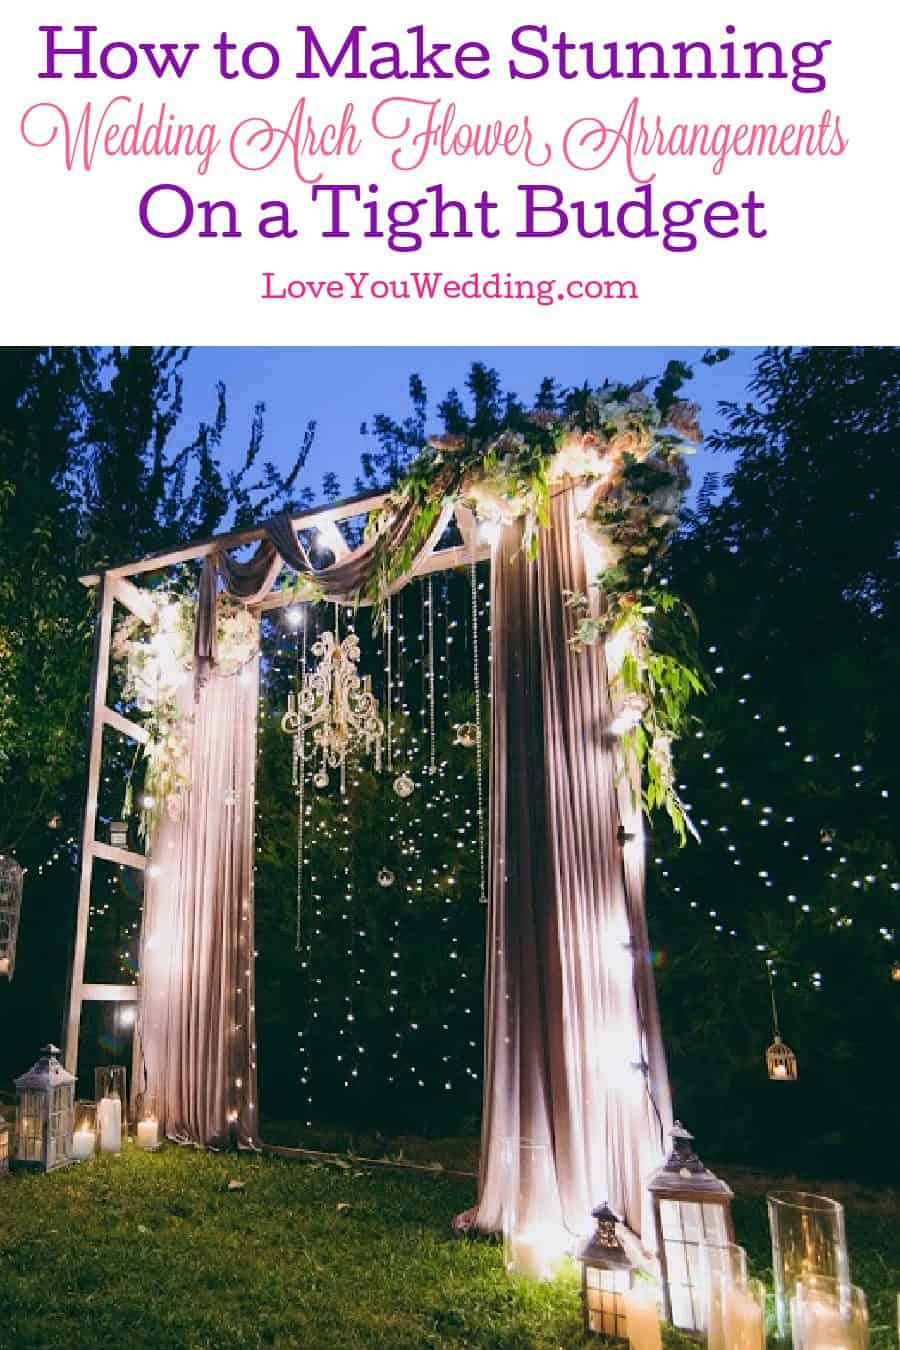 Learn how to create stunning wedding arch flower arrangements even if you're on a very tight budget. Check it out!